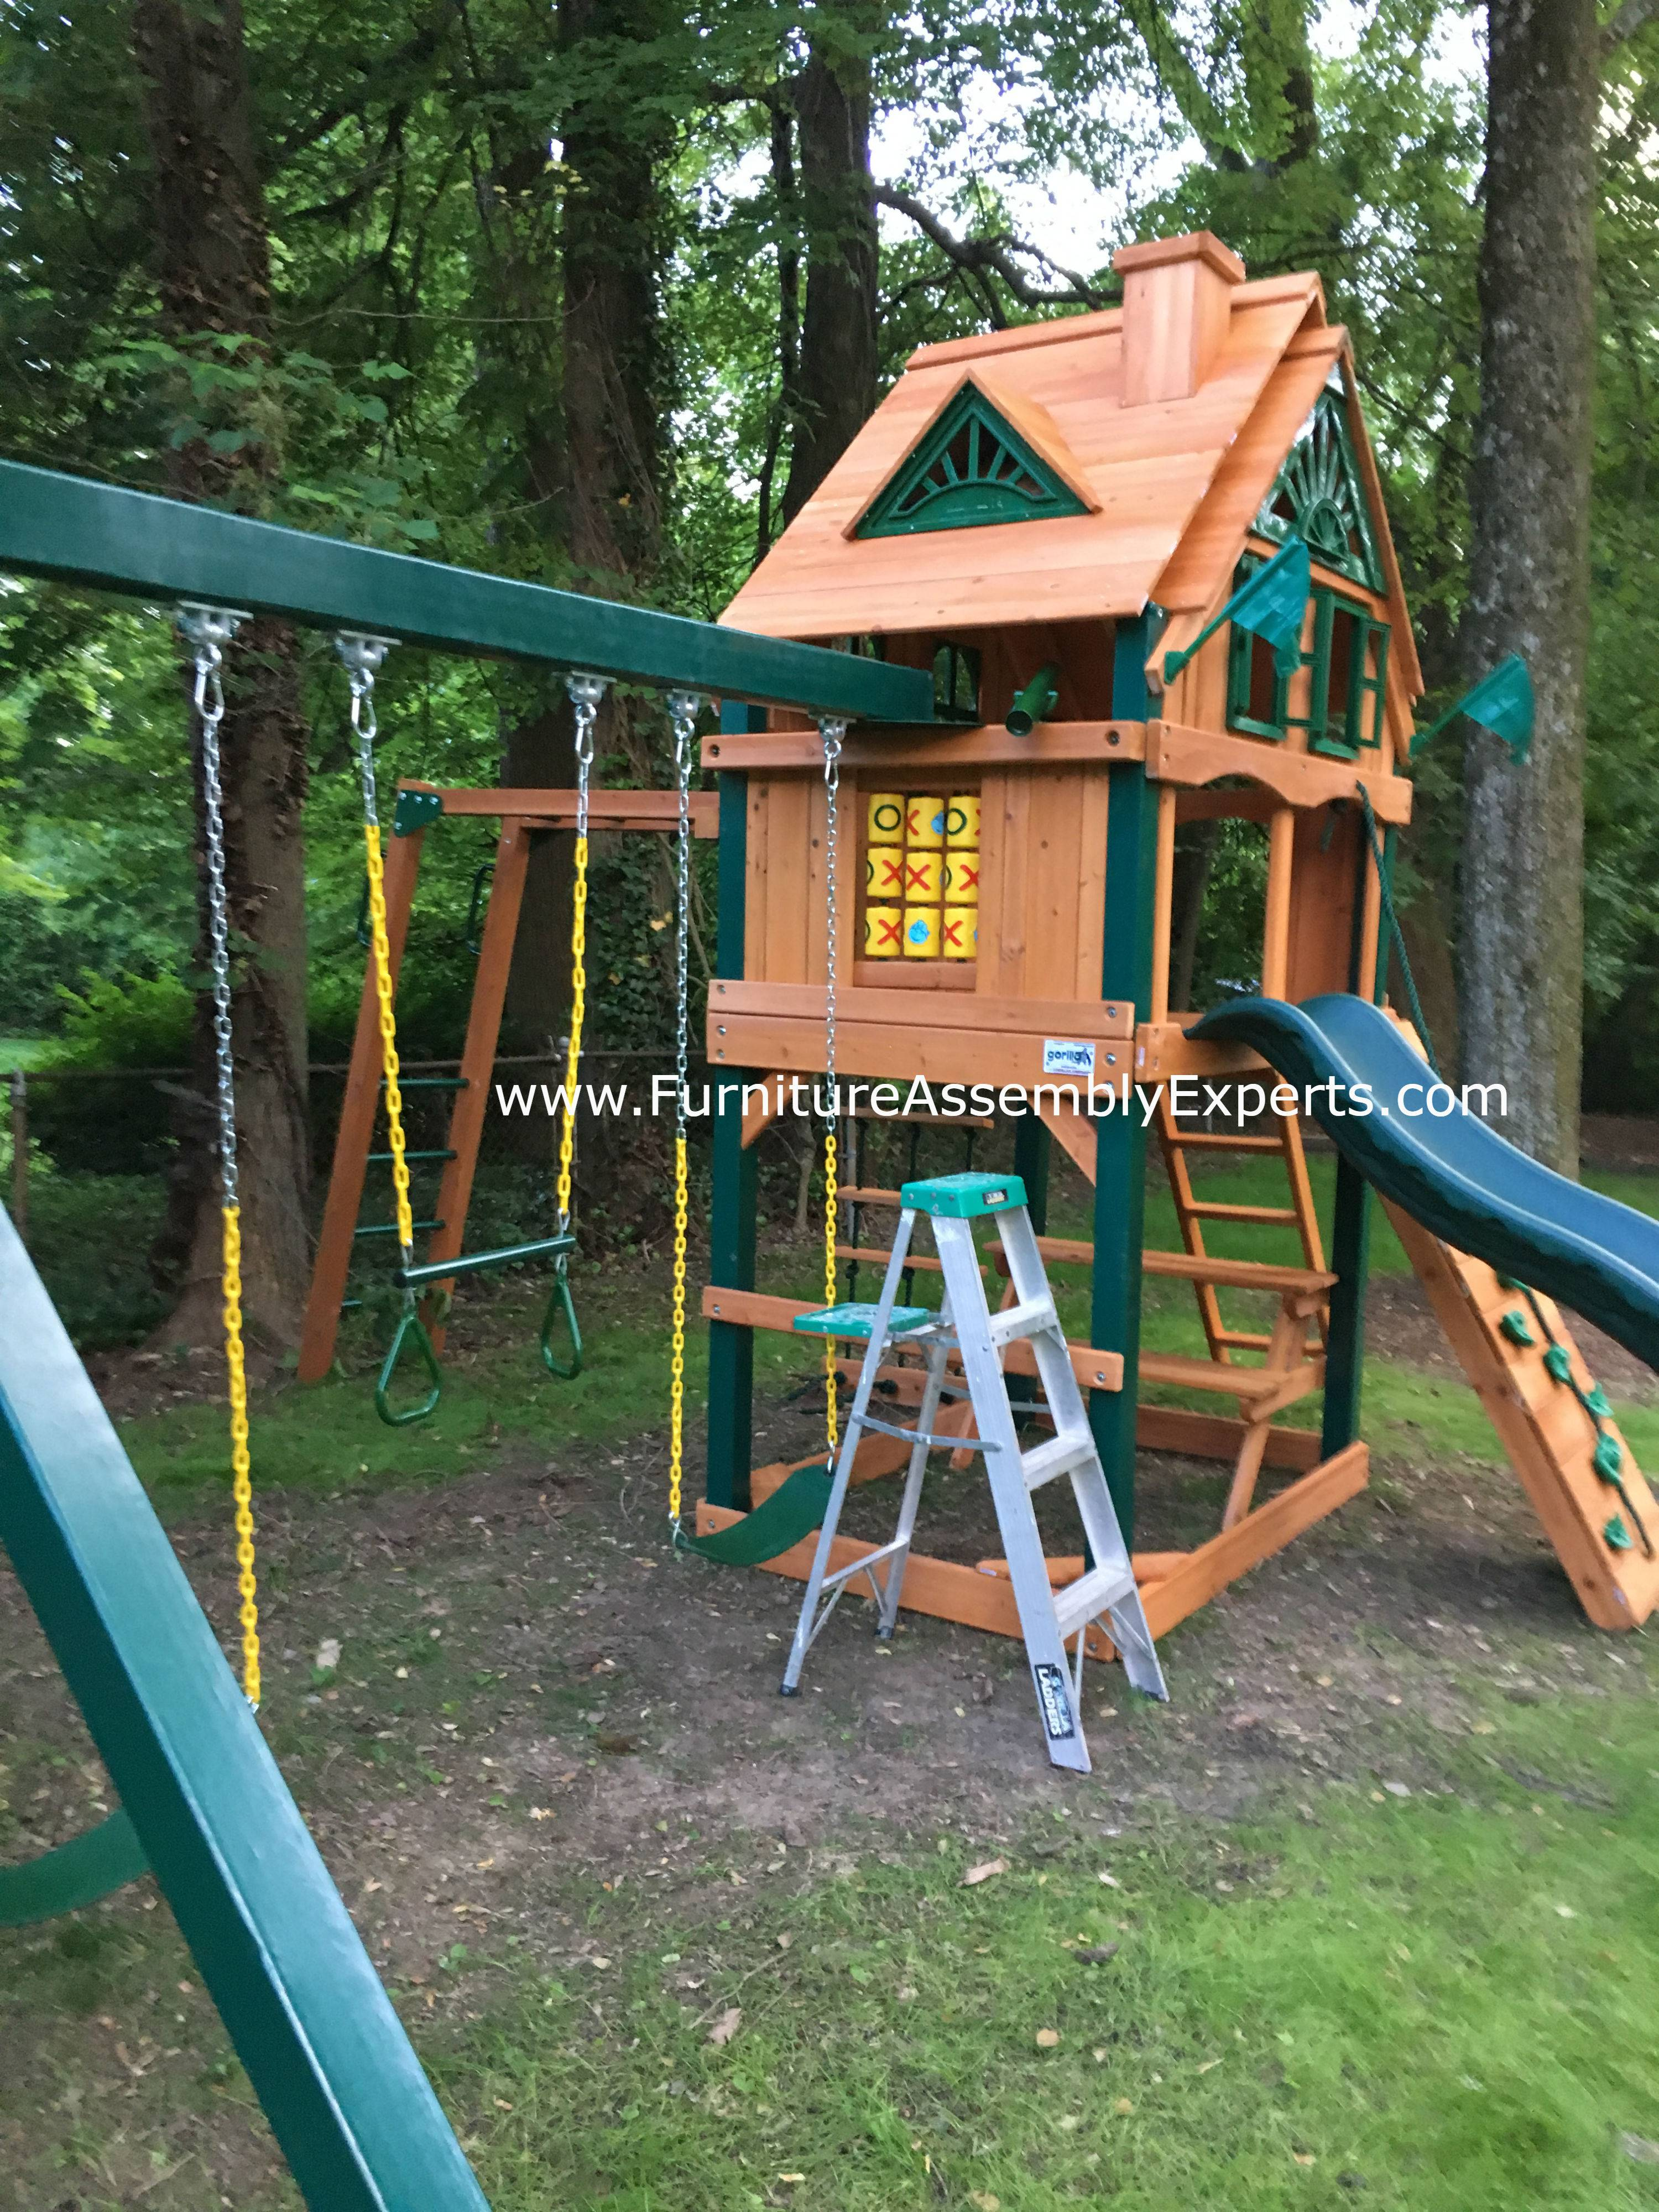 Gorilla navigator tree house assembly in leesburg Va